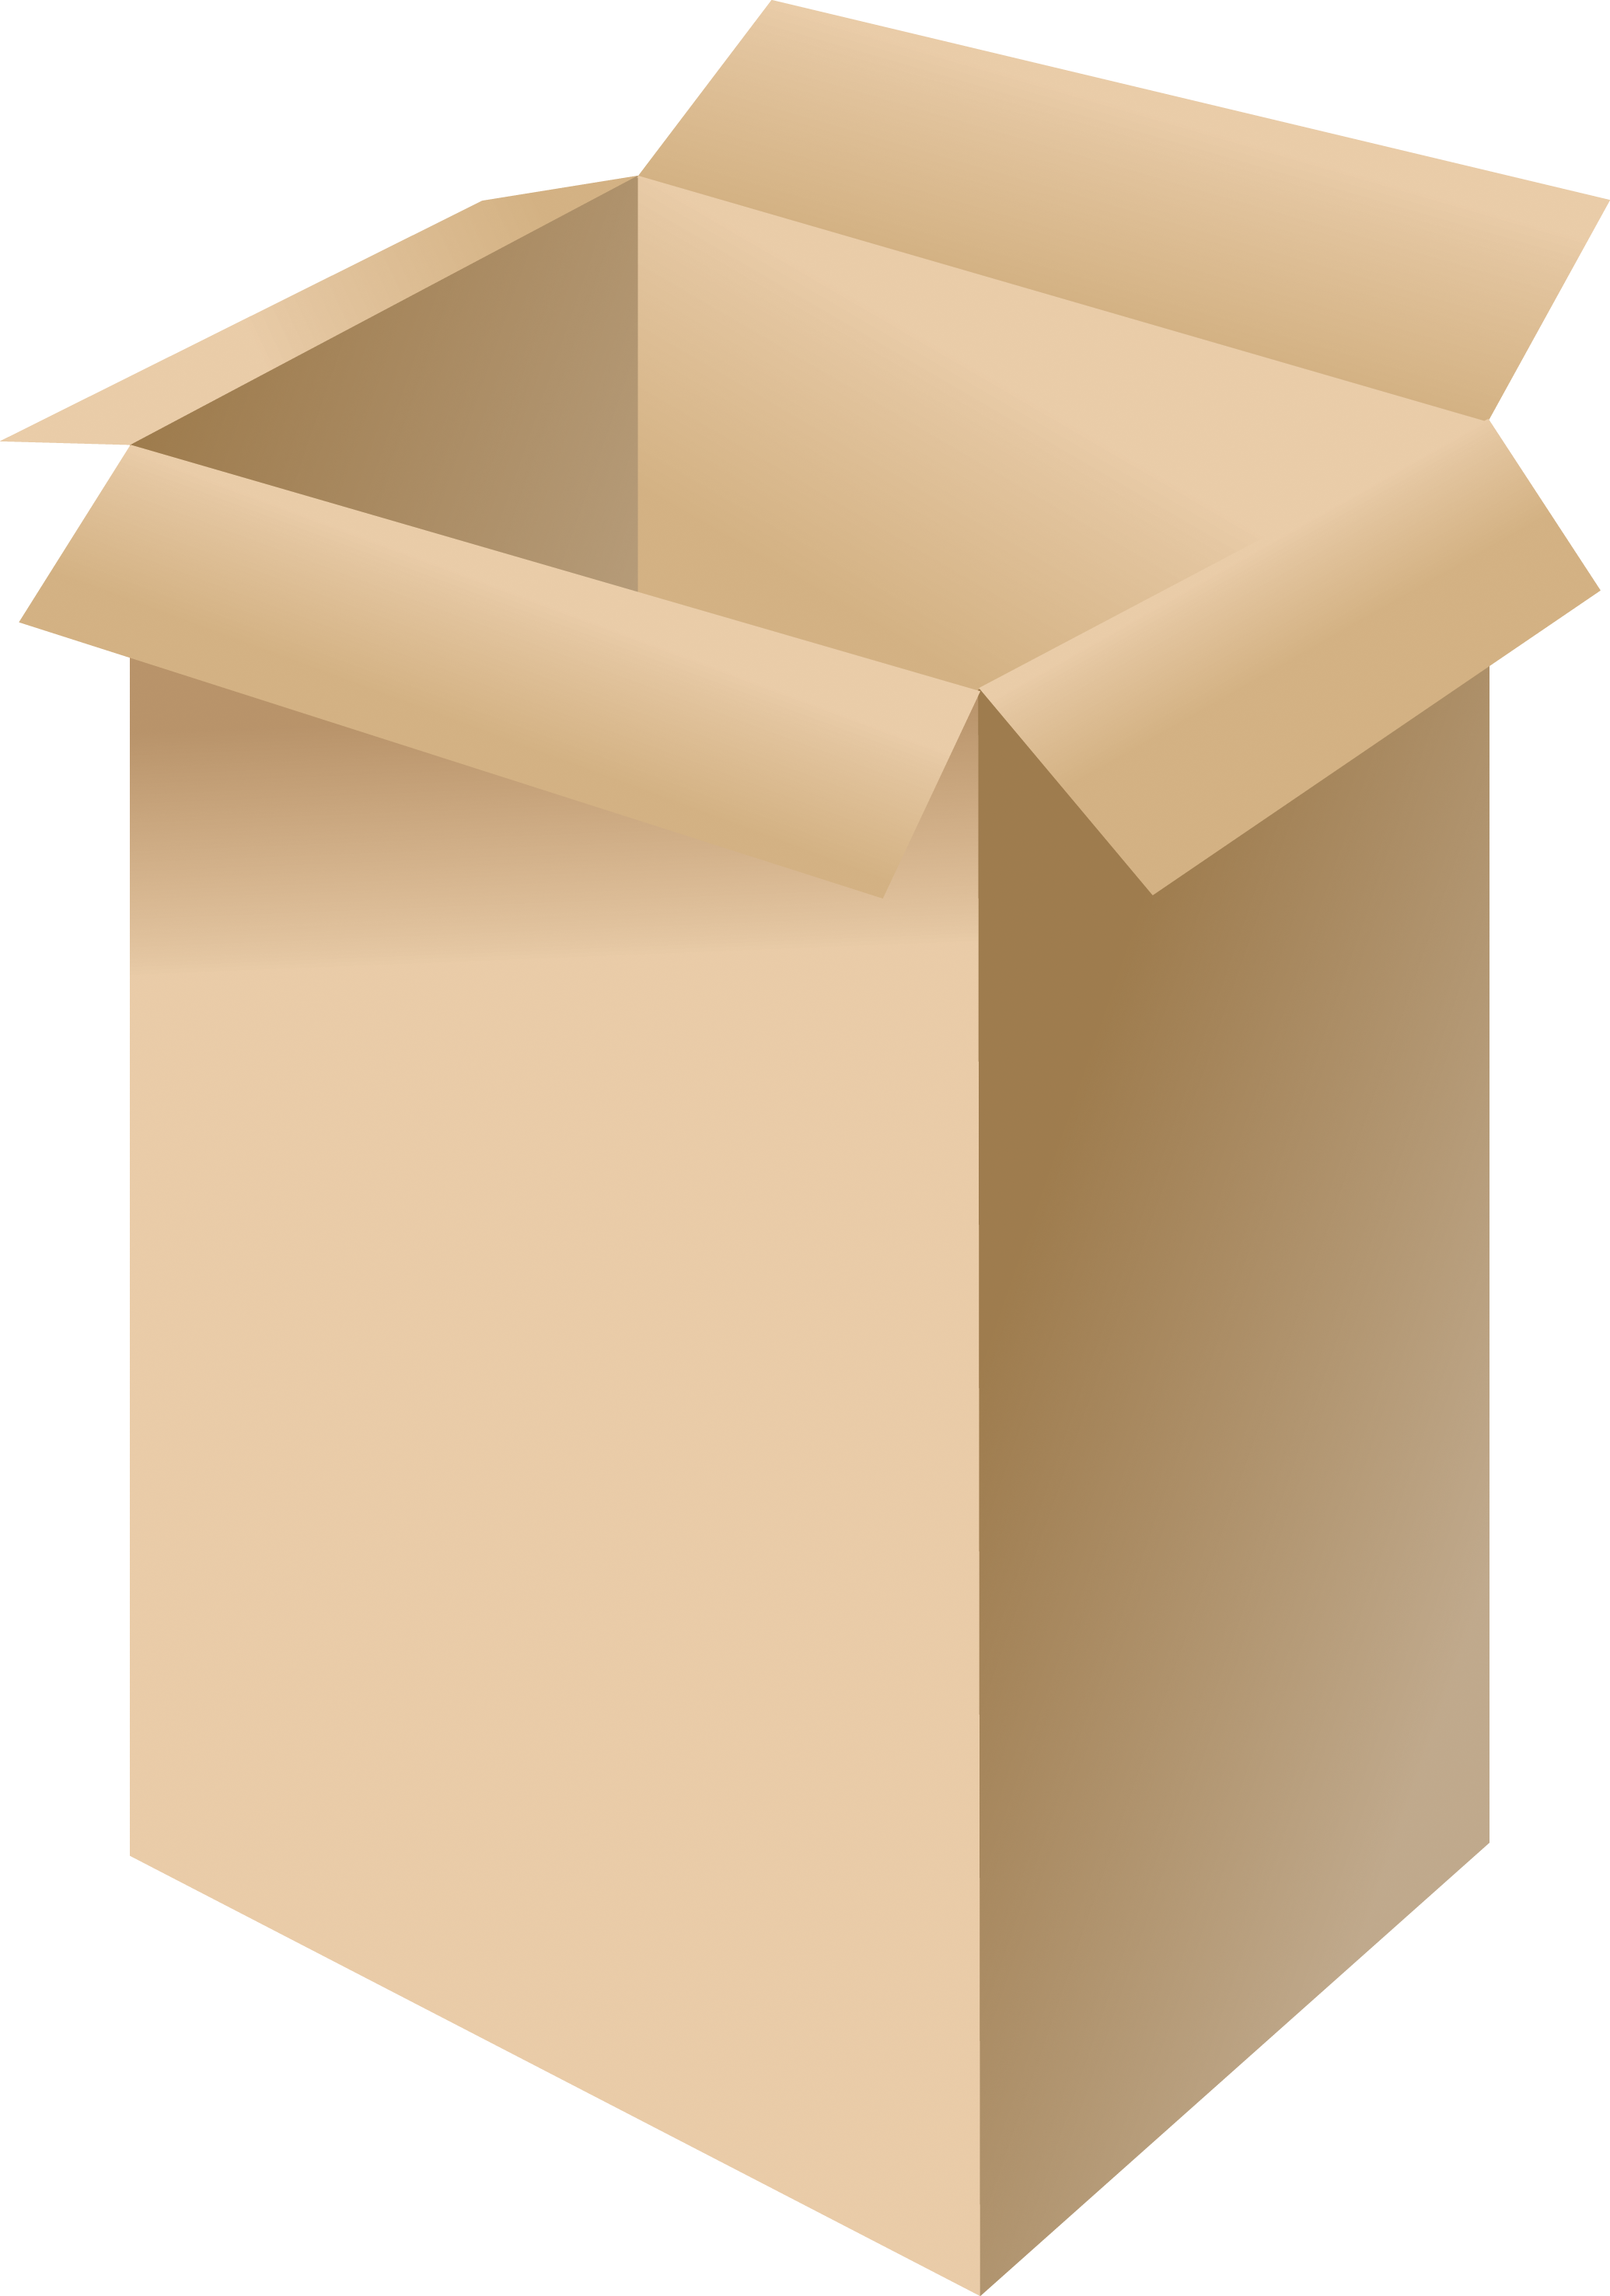 Now you can download Box PNG Picture